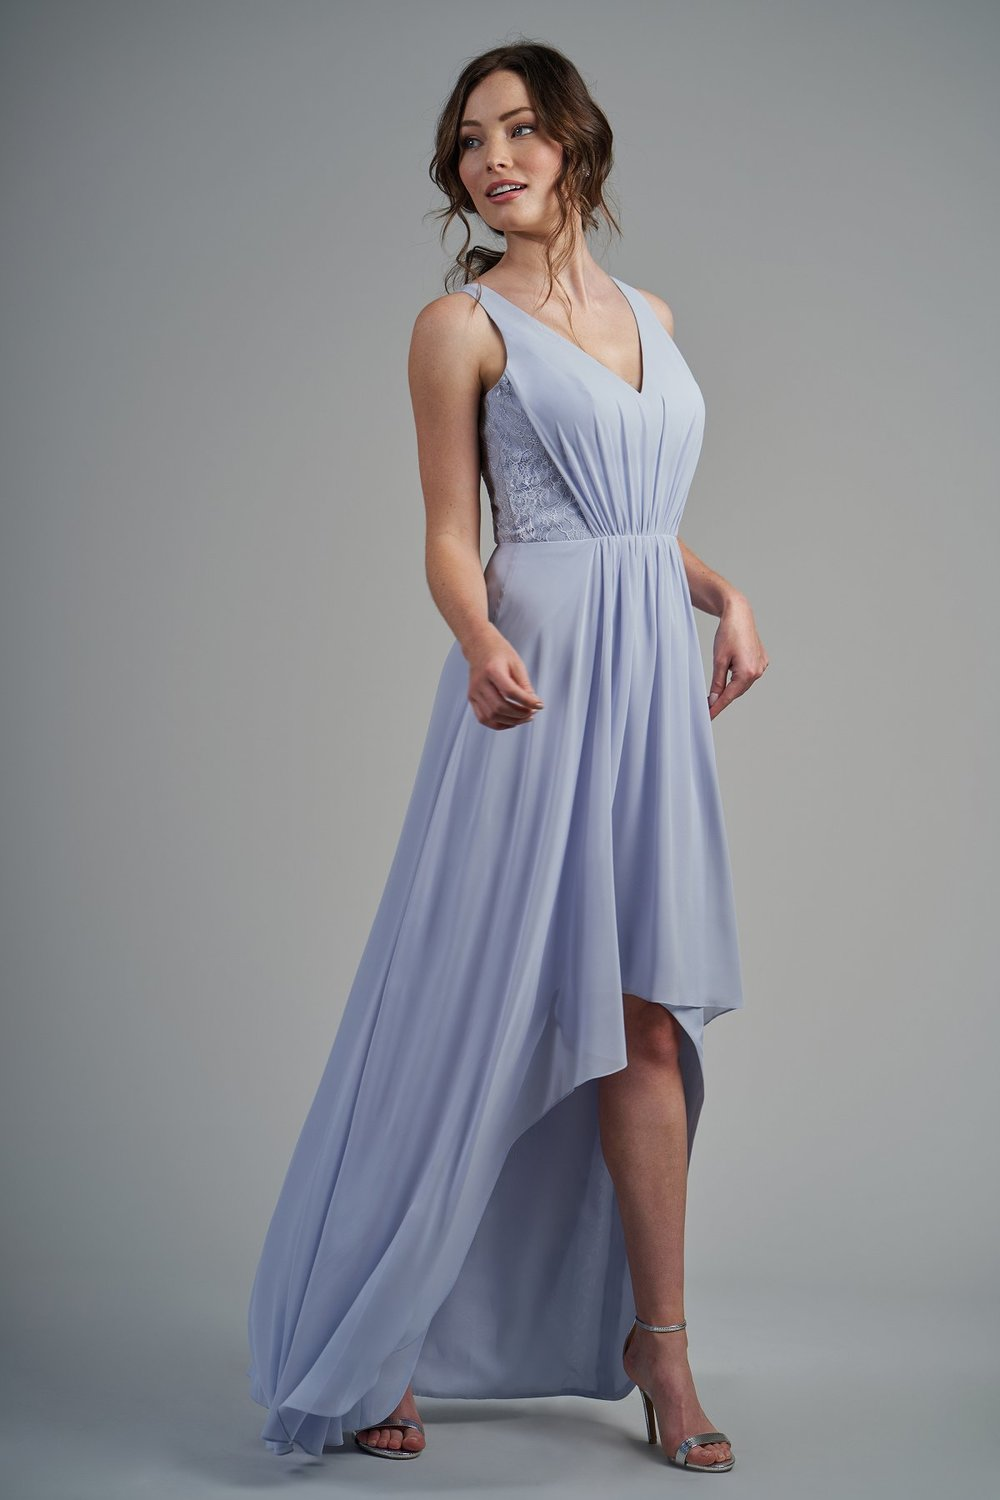 B213015 -  Beautiful poly chiffon and lace high-low bridesmaid dress with a flattering V-neckline and keyhole back. Detailed gathers throughout the dress and lace detail on the sides of the bodice to complete the look.    Available in 22 colors